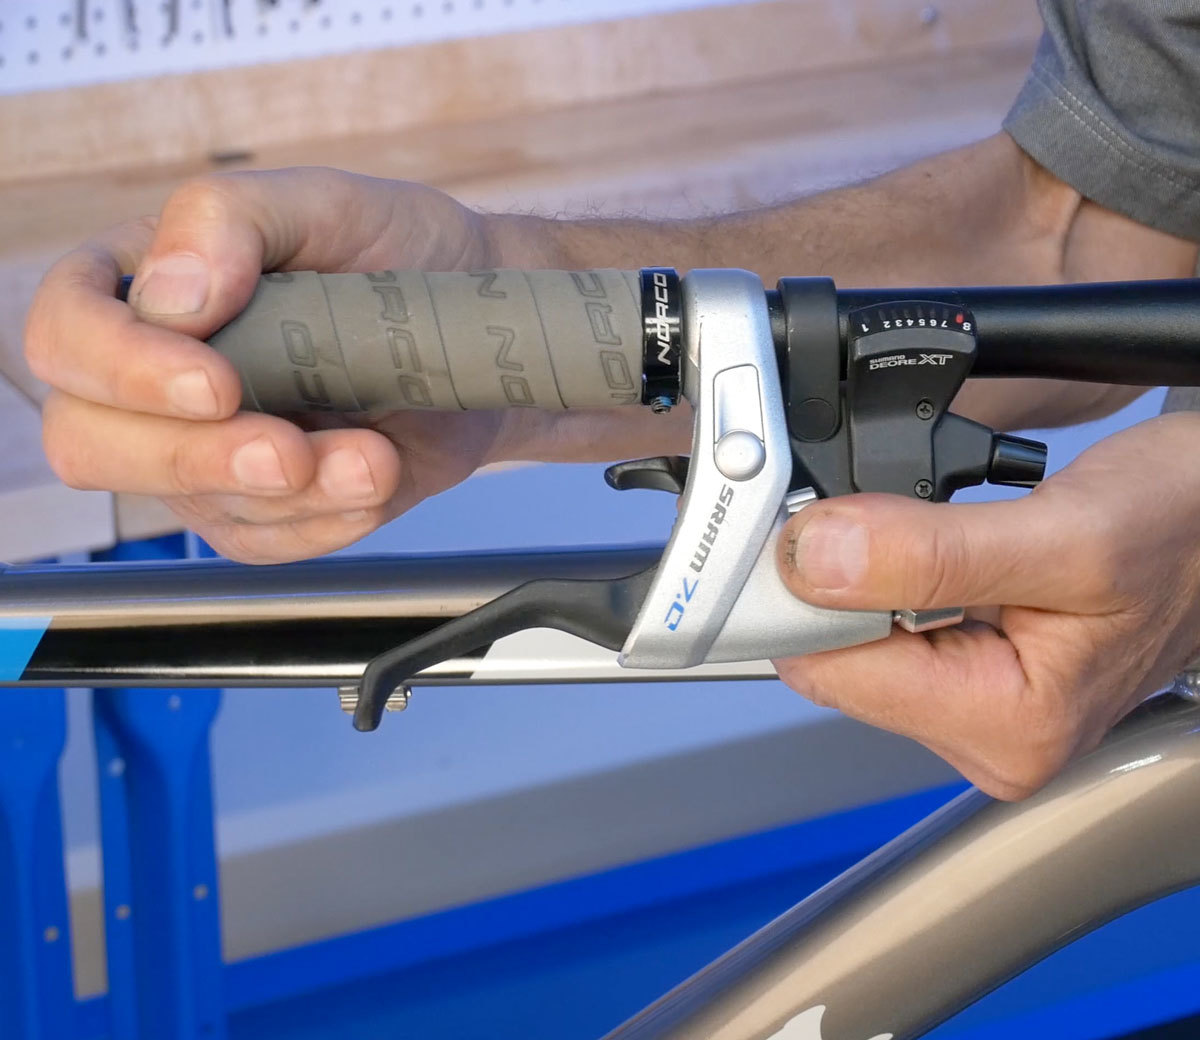 Trigger shifters are installed before brake lever